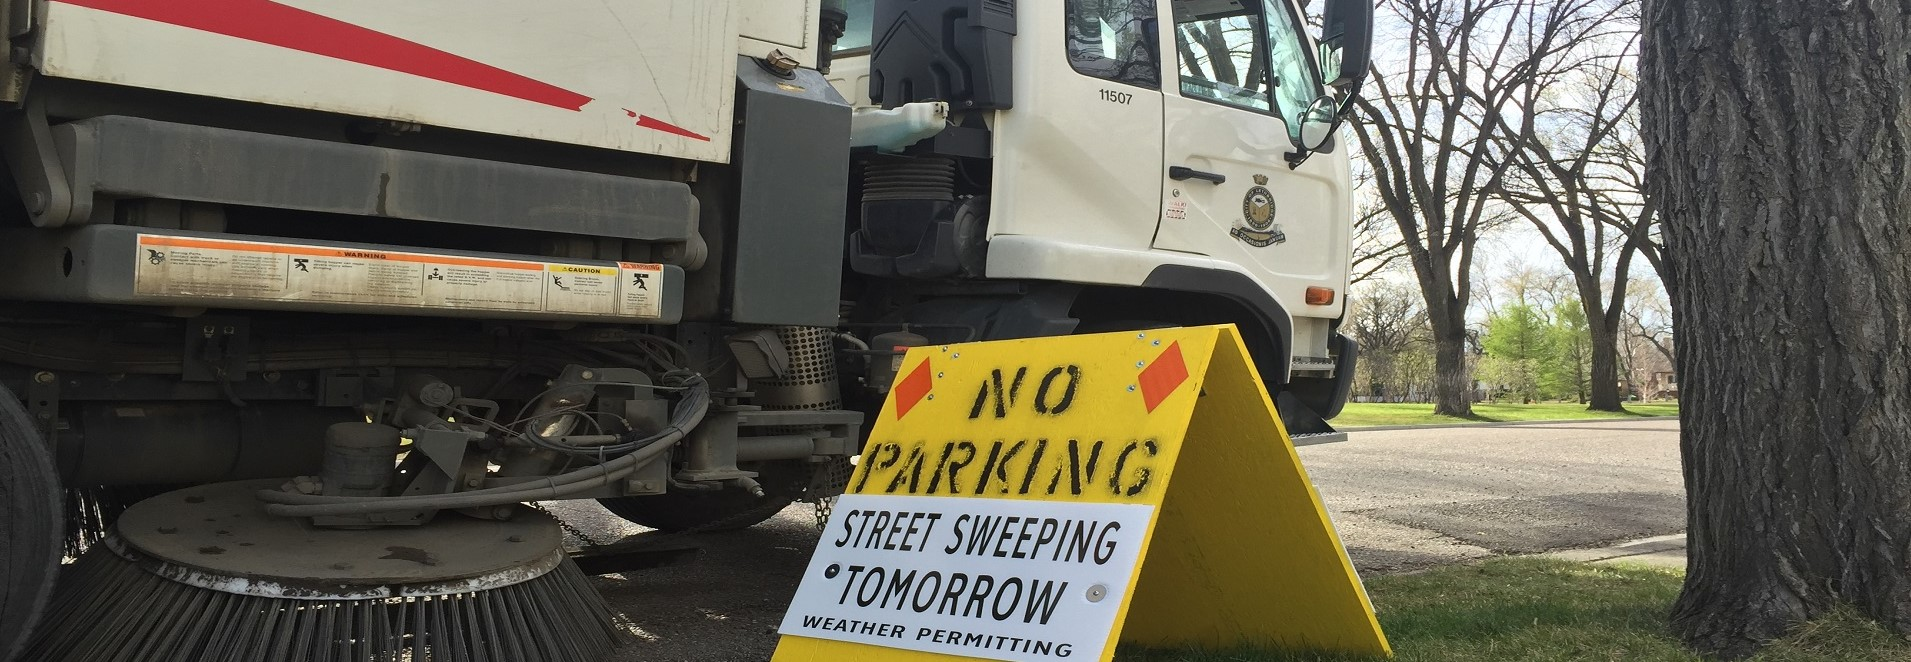 <div id=slideshow_title>Street Sweeping August 24th</div> <br>Street sweeping will occur on Saturday, August 24th. Please move all vehicles off street by 7 a.m. the morning of so crews can properly clean.